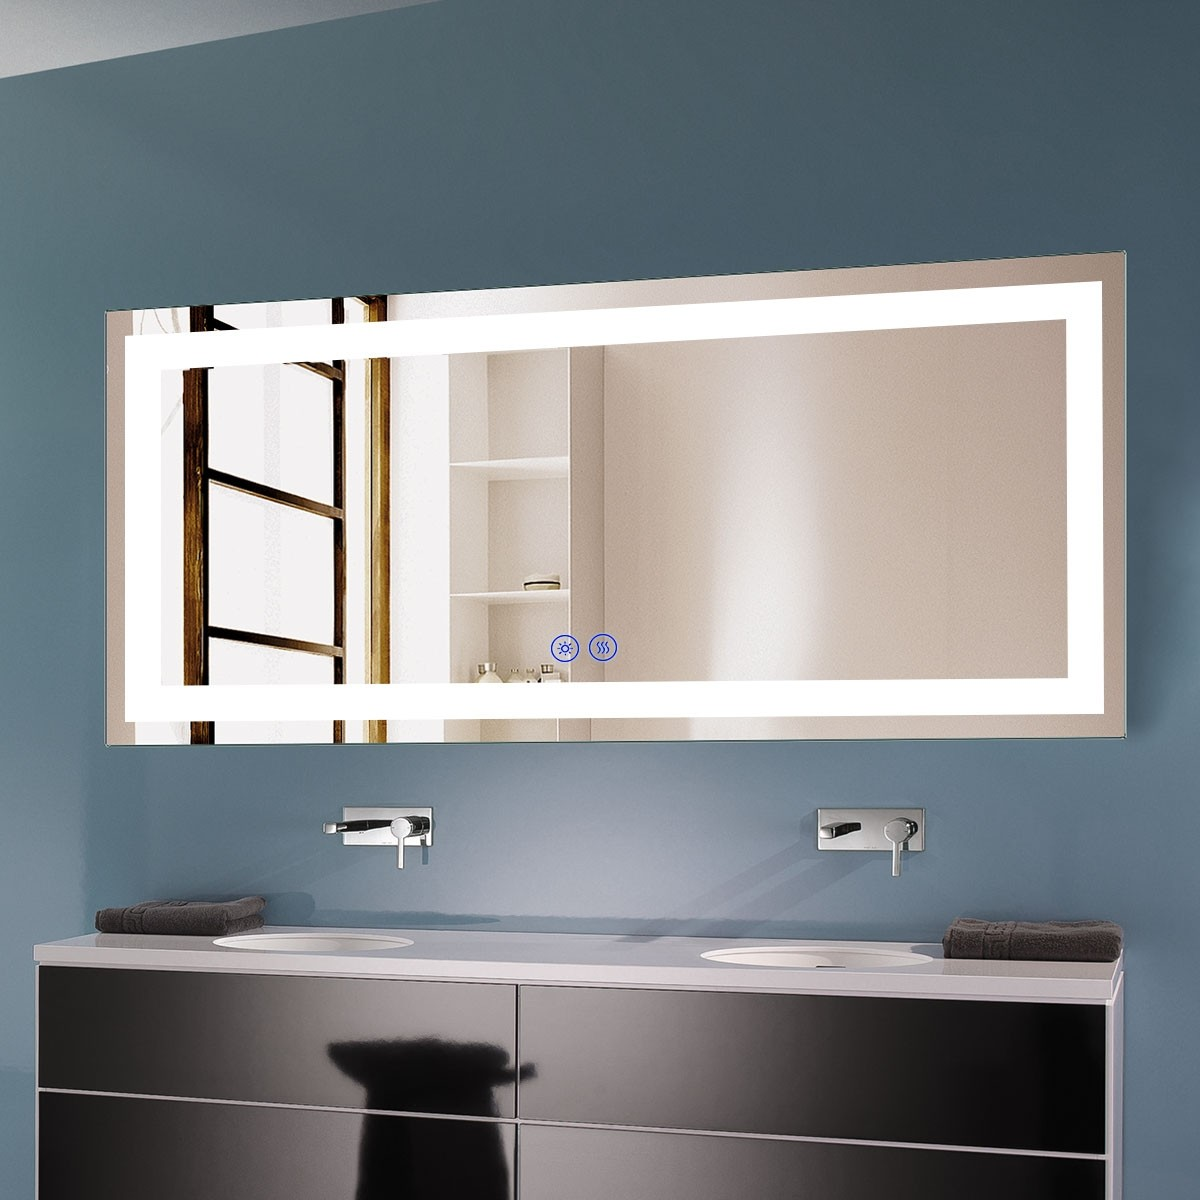 DECORAPORT 70 x 32 Inch LED Bathroom Mirror/Dress Mirror with Touch Button, Bluetooth, Anti-Fog, Dimmable, Vertical & Horizontal Mount (CT021-7032)